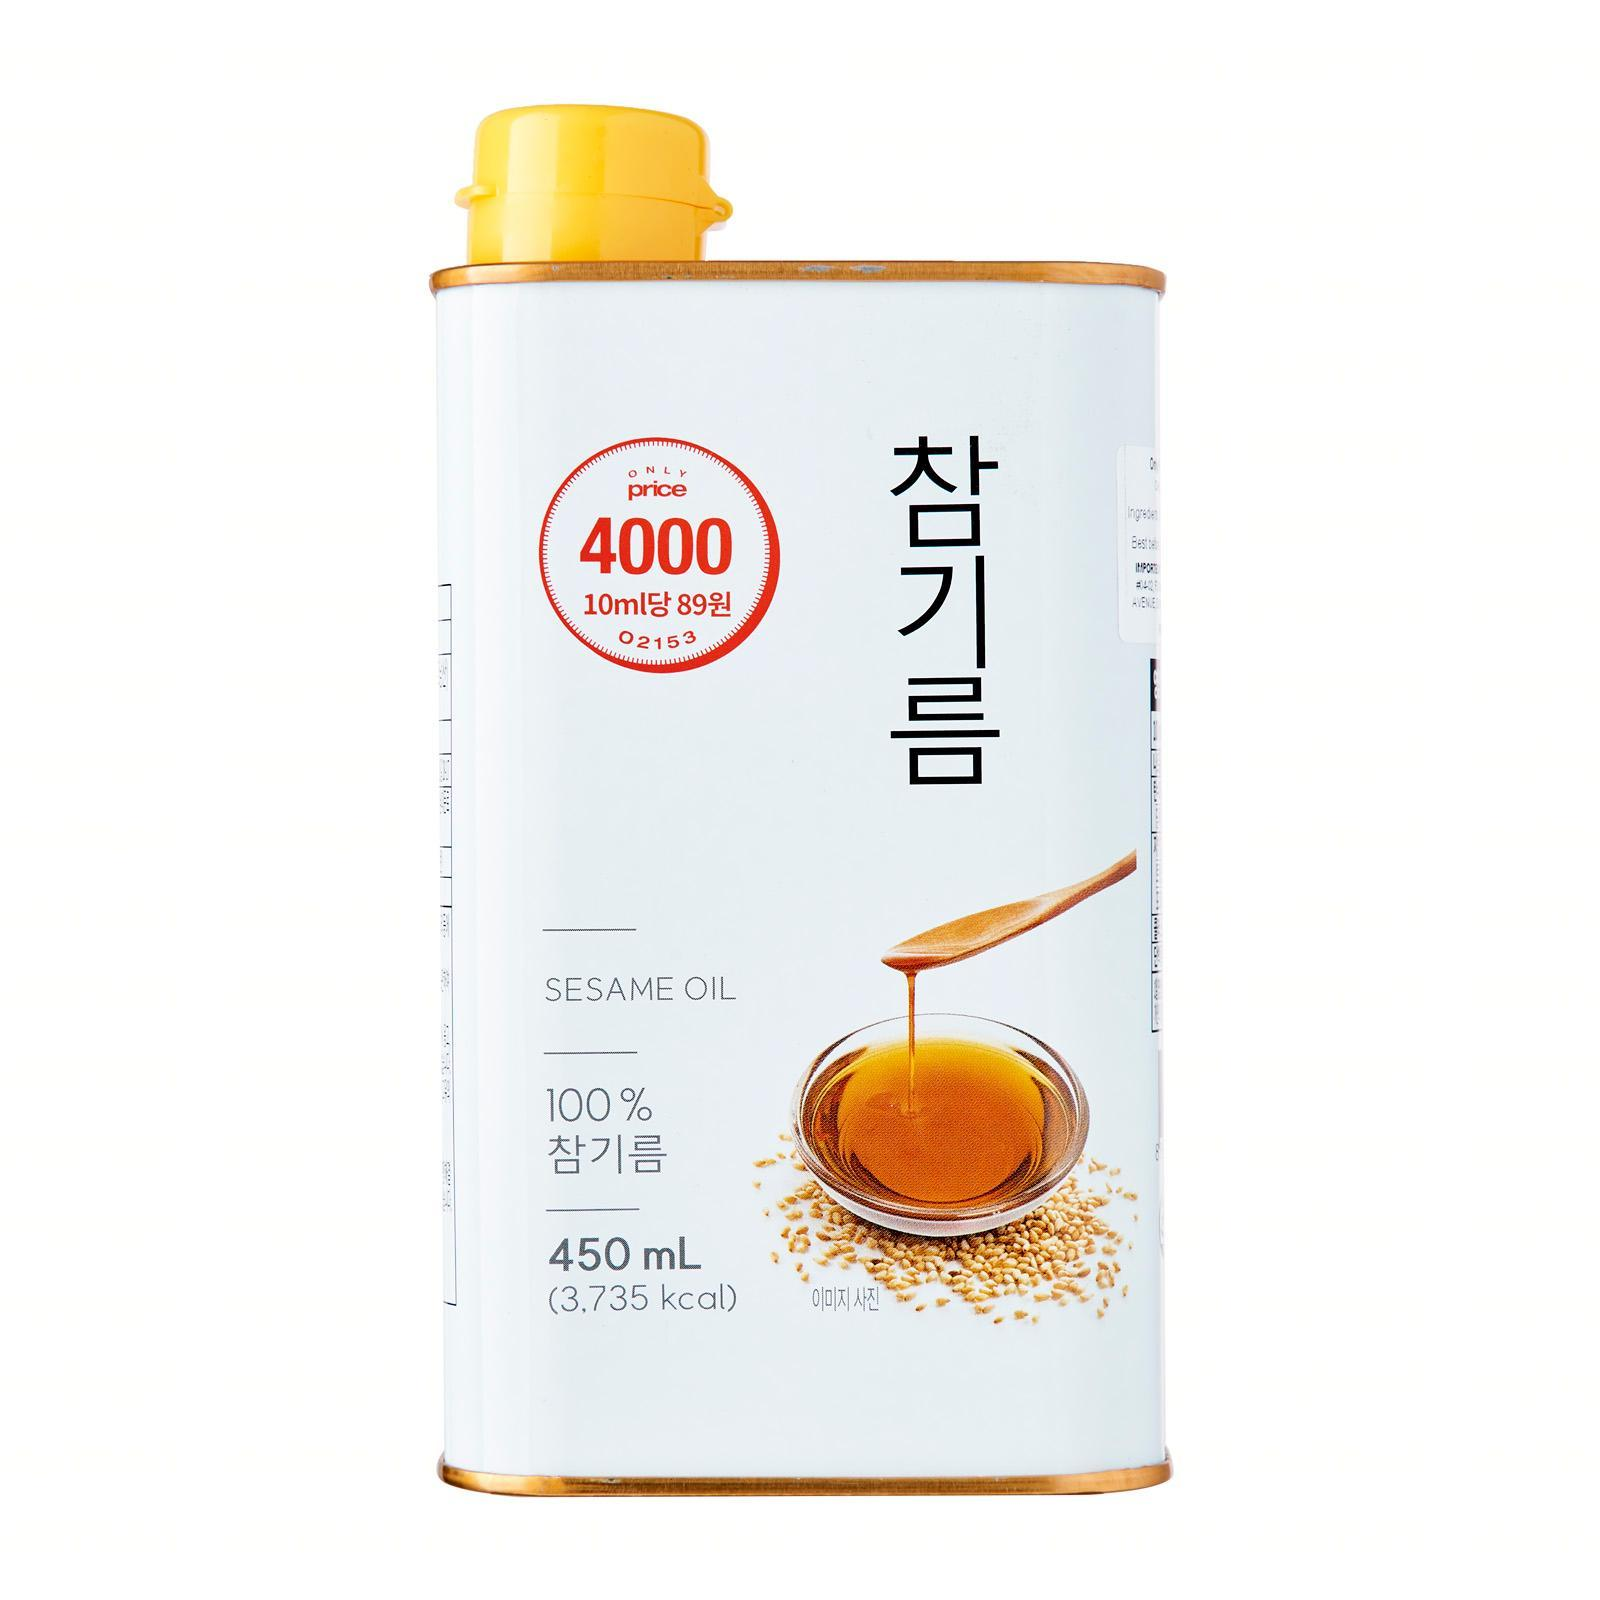 Lottemart Only Price Sesame Oil By Redmart.